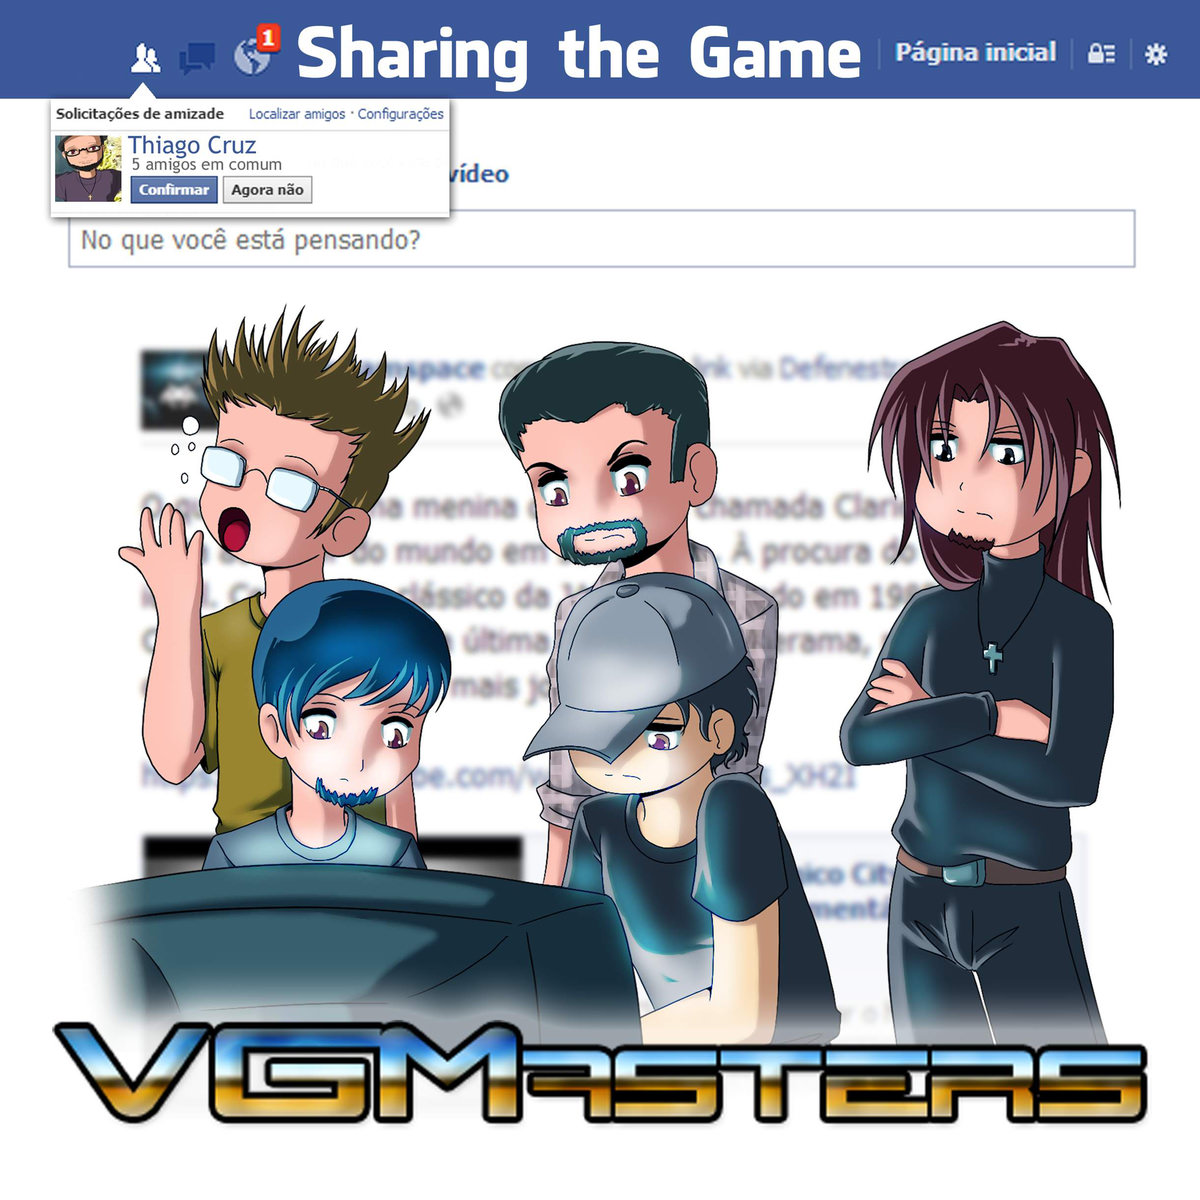 VGMasters - Sharing the Game